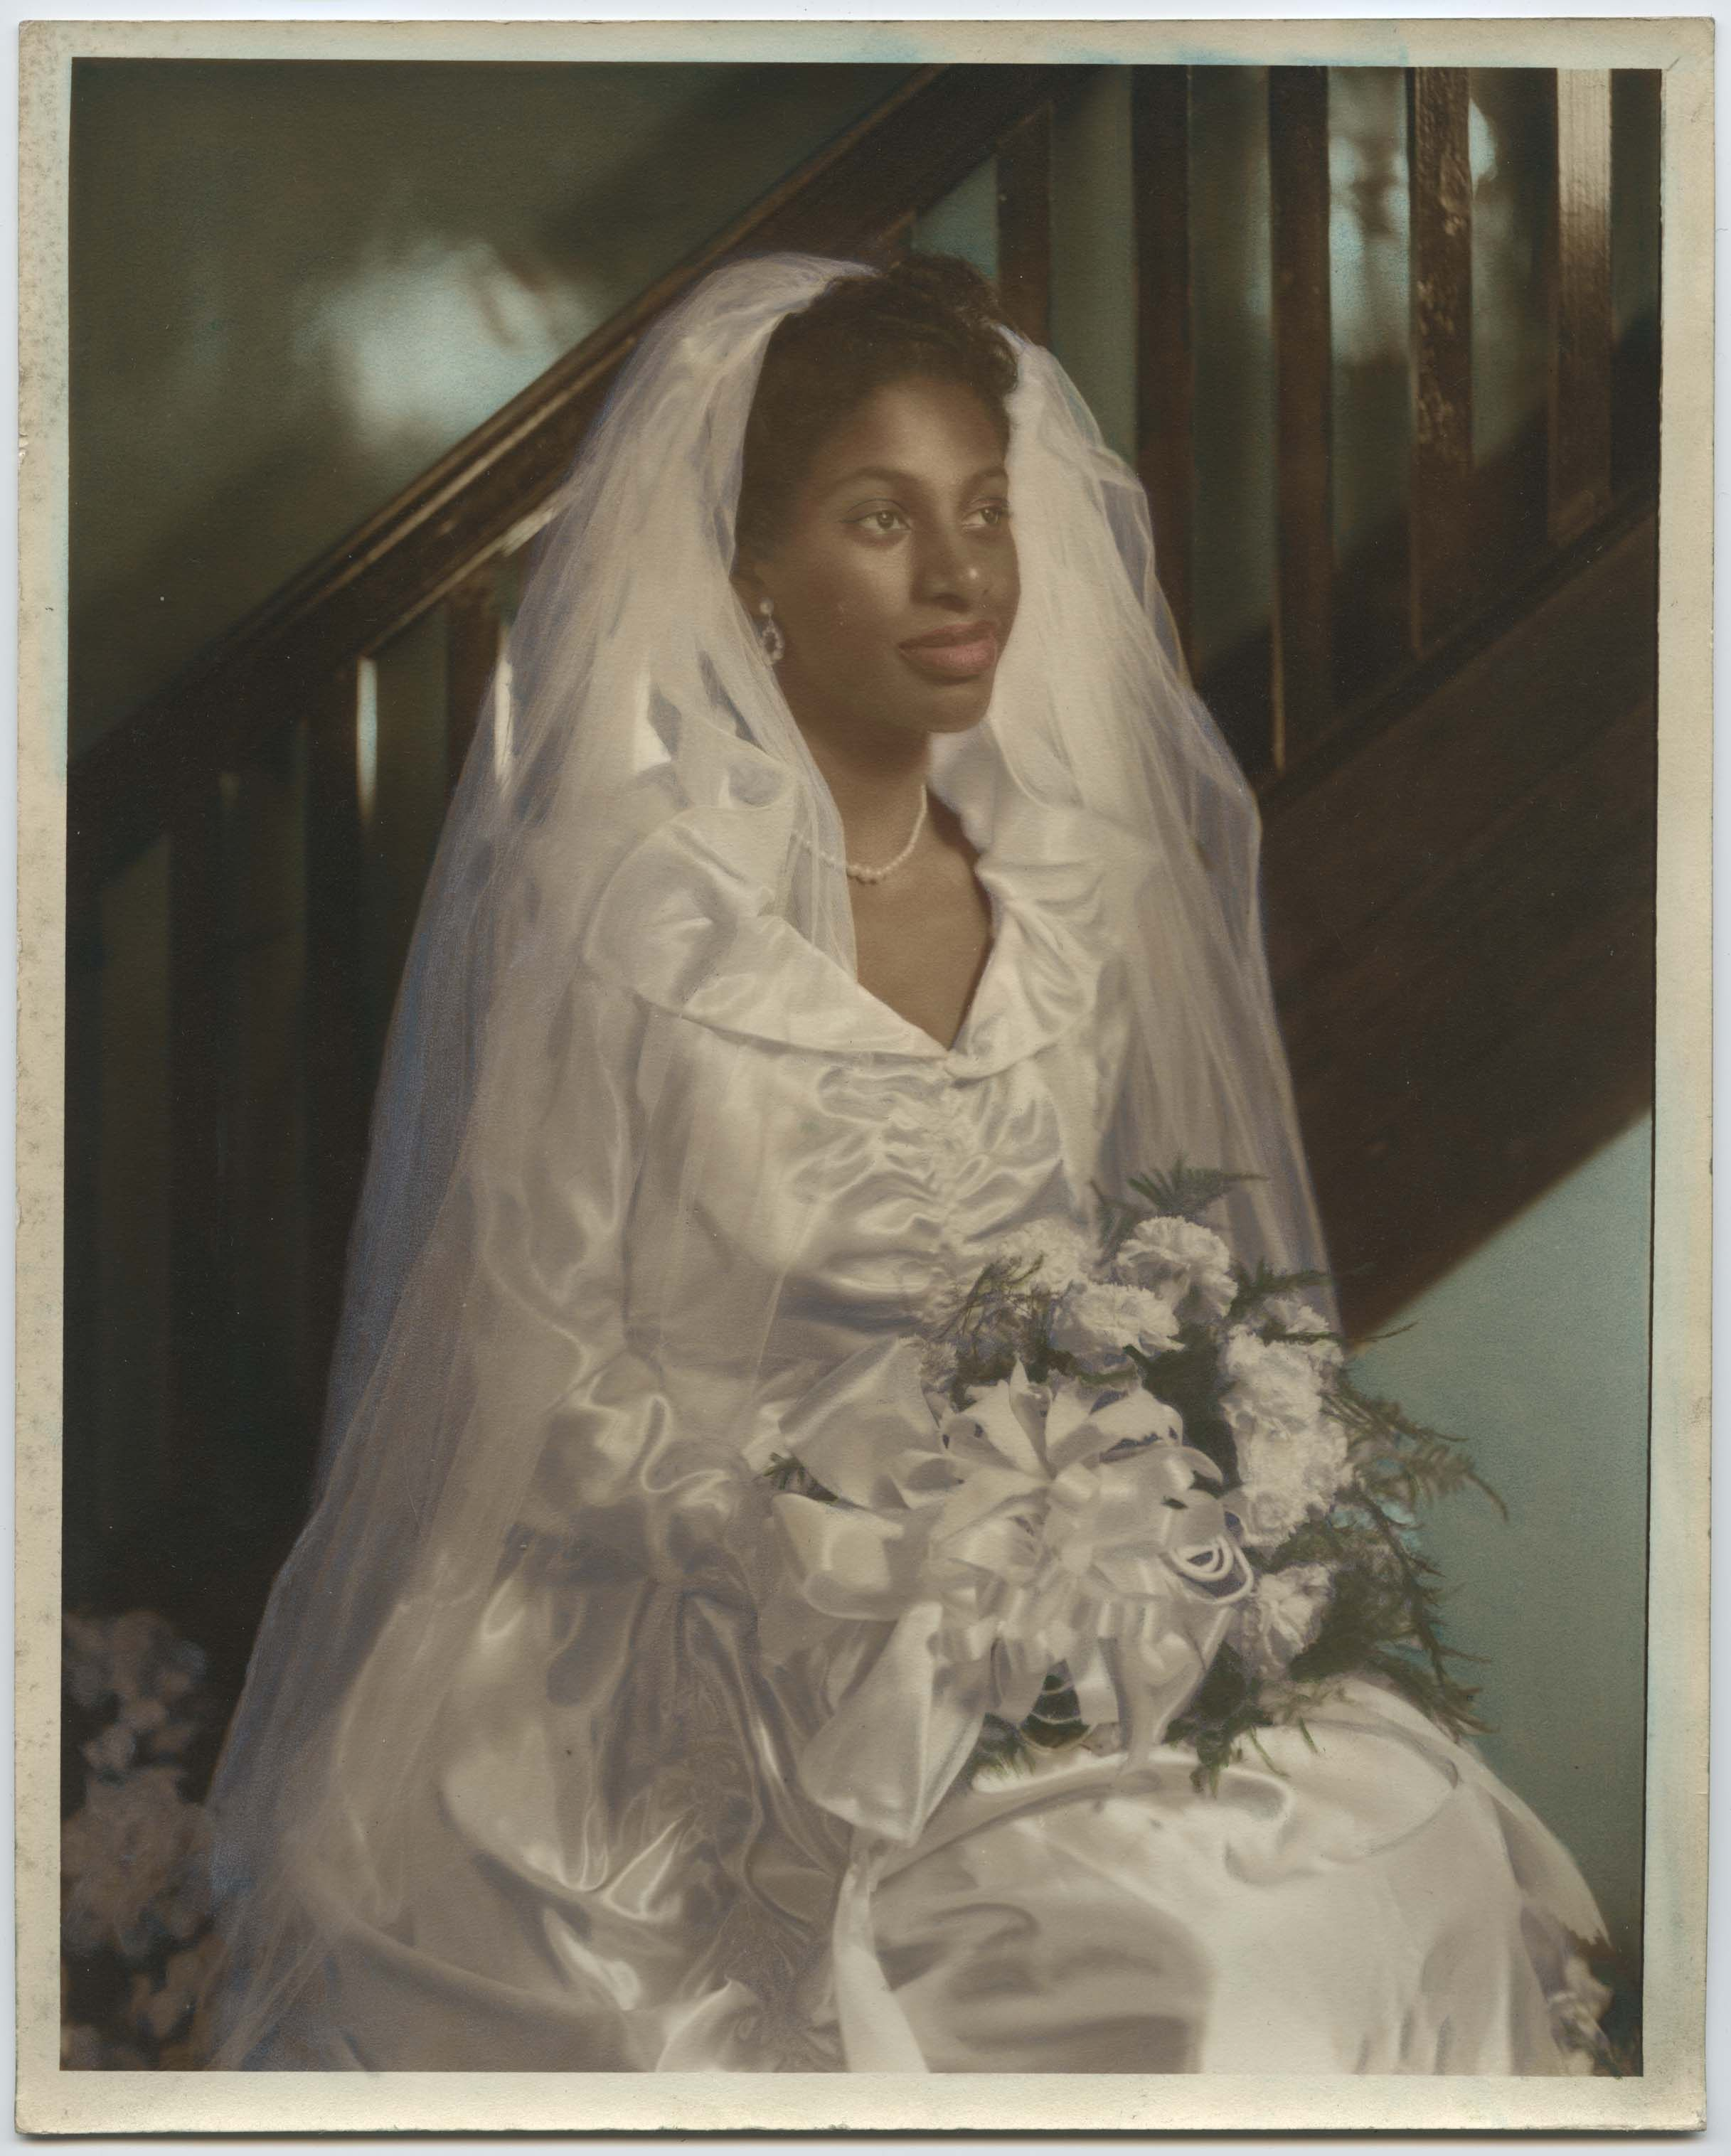 Vintage Wedding Dresses Nyc: African-American Bride (Circa 1950s)